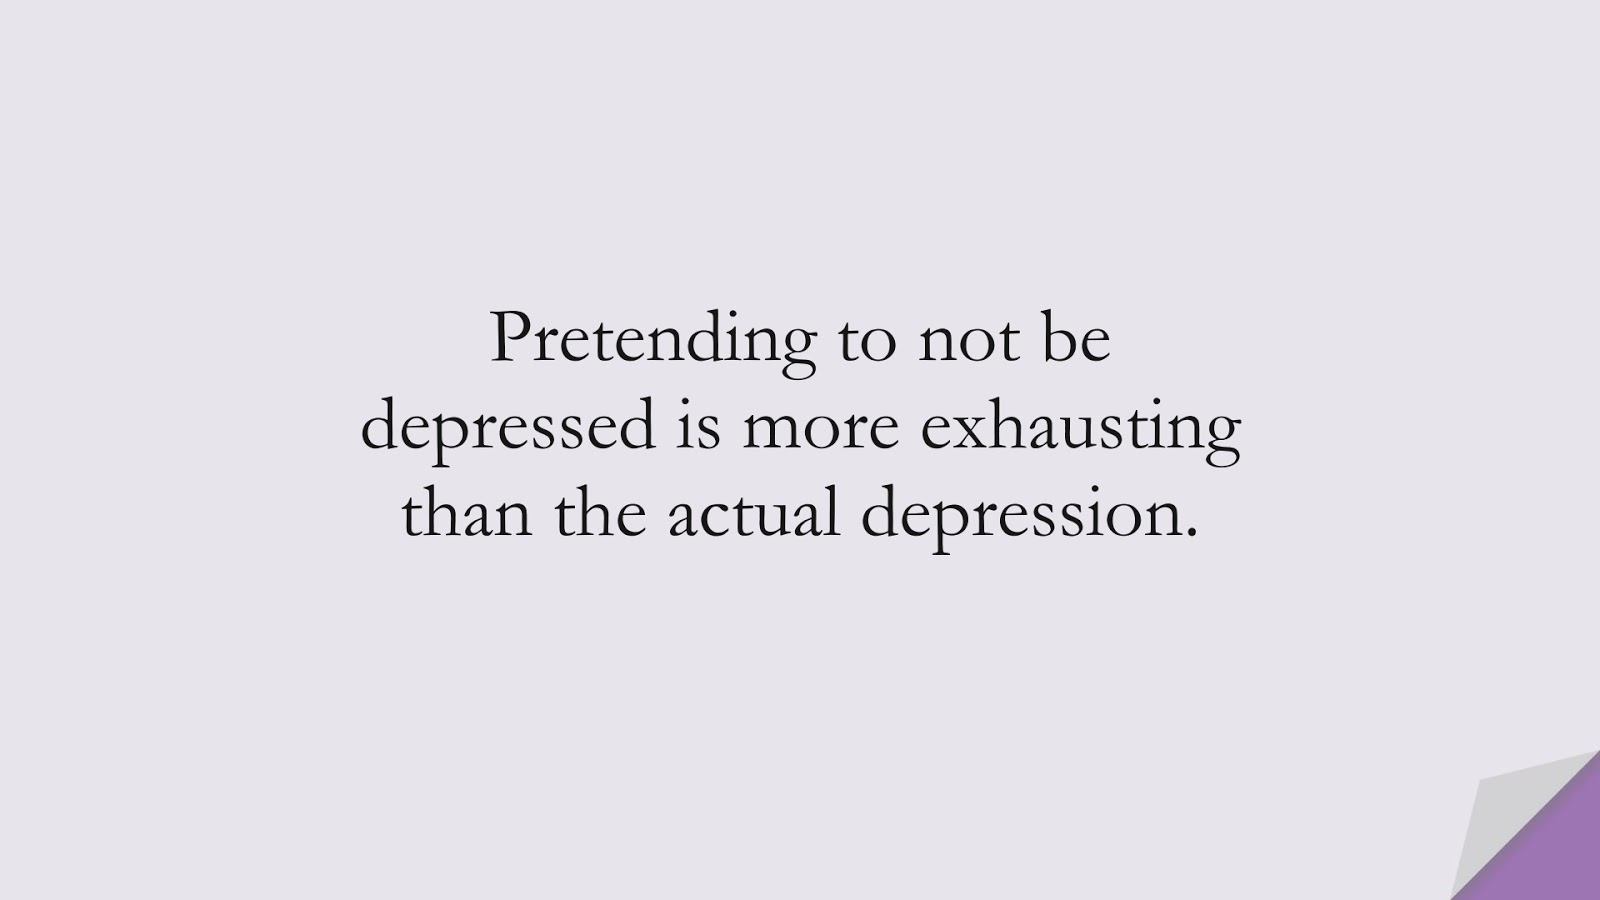 Pretending to not be depressed is more exhausting than the actual depression.FALSE